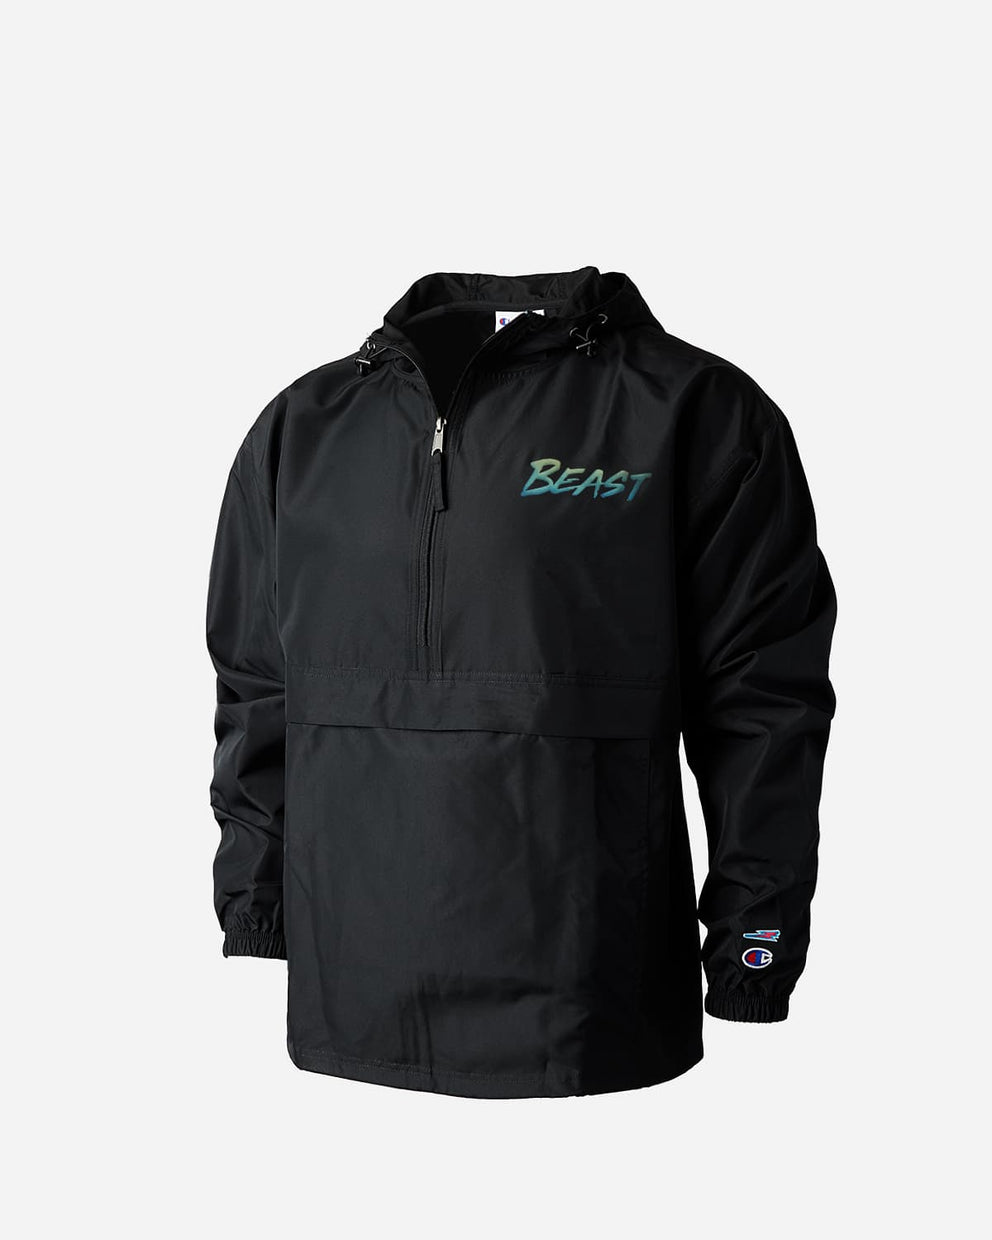 'Beast' Spectrum Reflective Champion Packable Anorak